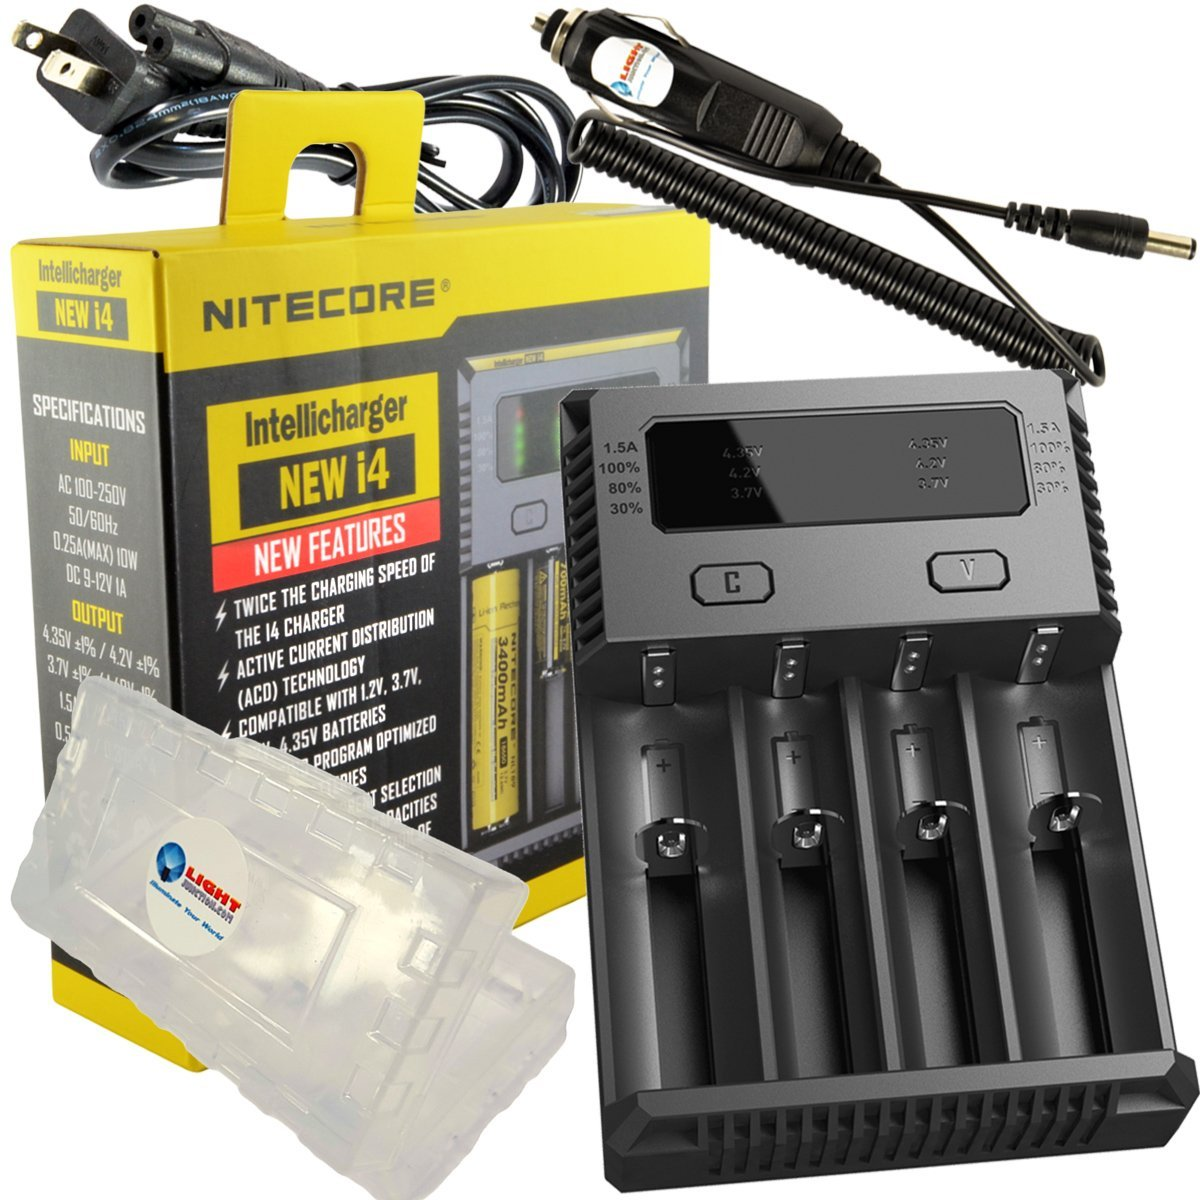 BUNDLE: Nitecore i4 V2016 NEW 2016 version Intellicharger Universal Smart Battery Charger for Li-ion / IMR / Ni-MH/ Ni-Cd w/ Car Adapter, and Lightjunction Battery Case